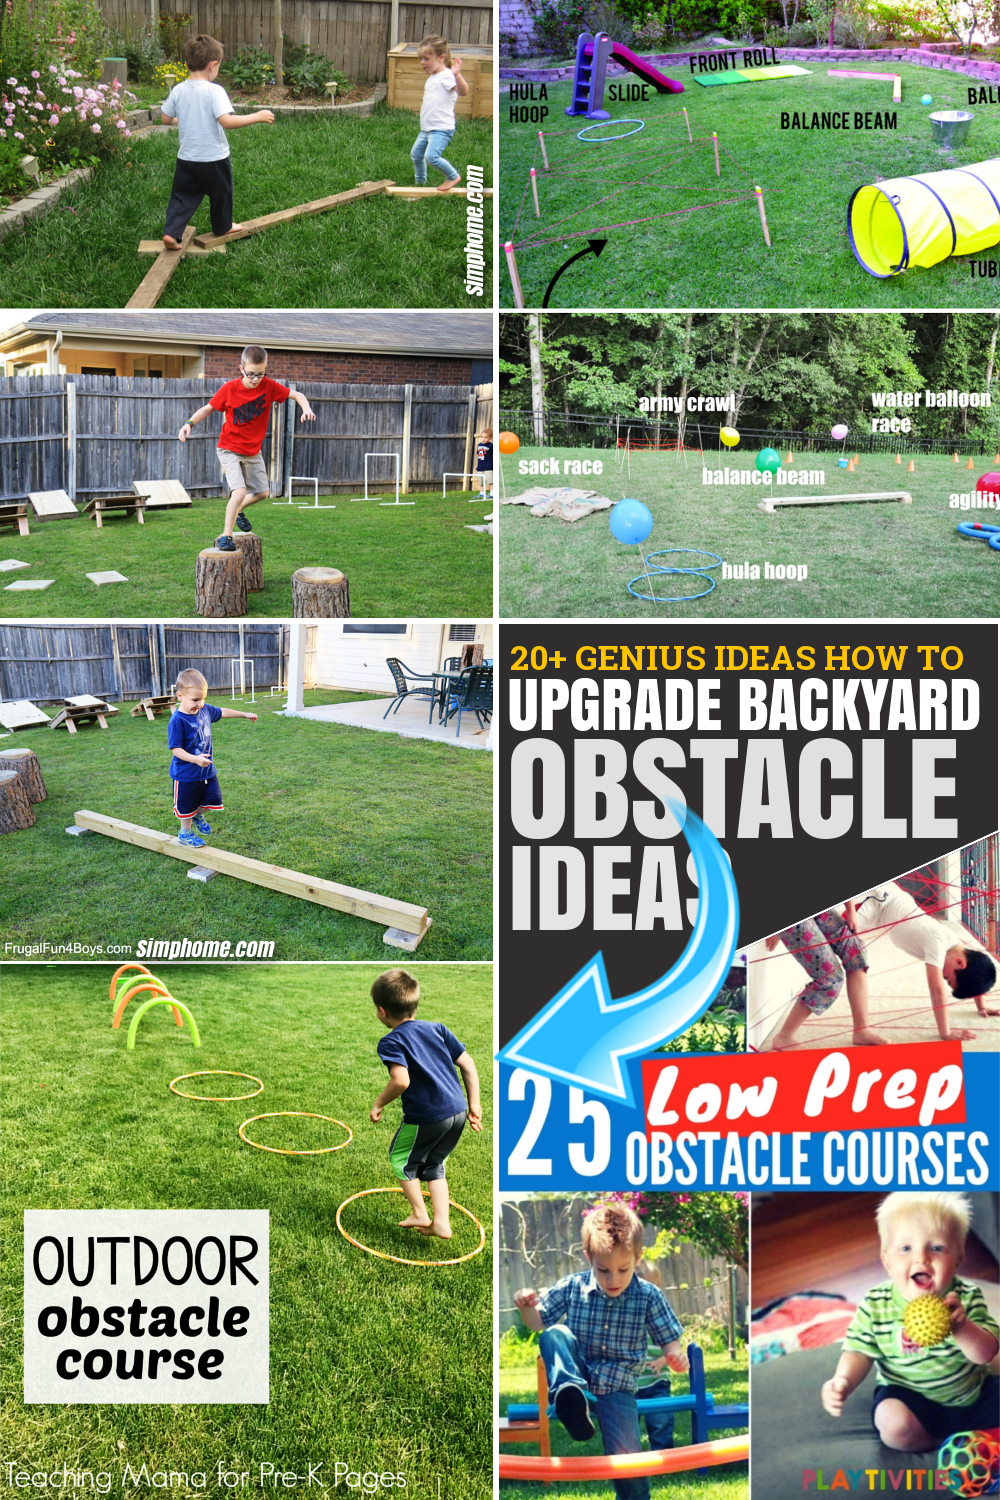 SIMPHOME.COM 10 Genius Tricks of How to Upgrade Backyard Obstacle Course Ideas Featured Image